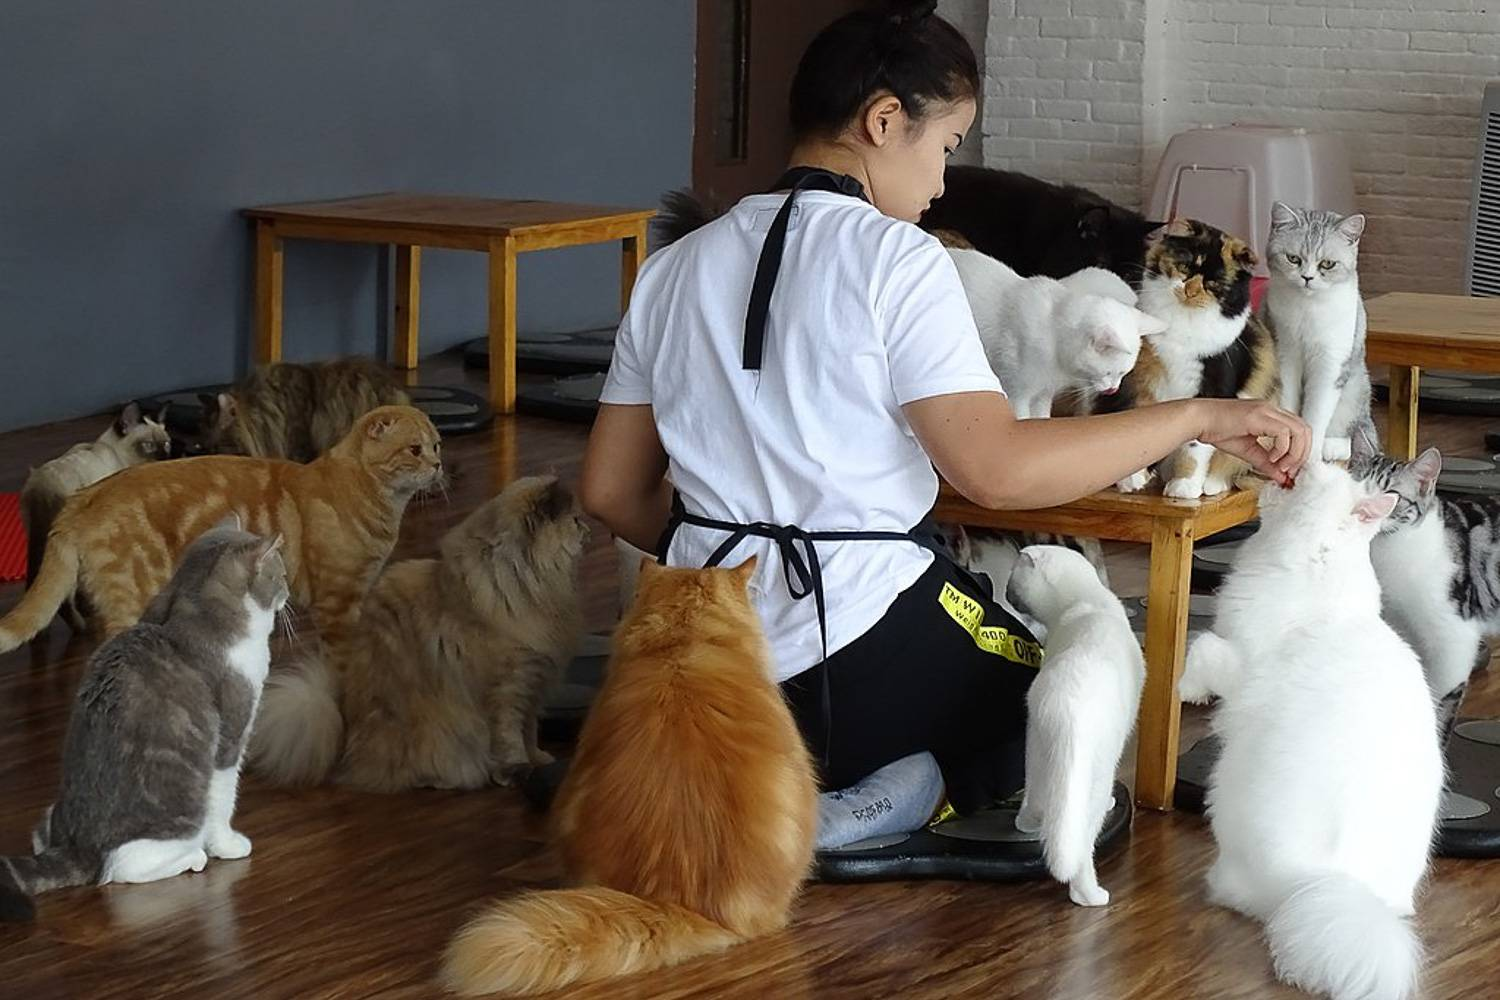 Image of waiters surrounded by cats at a table of a cat cafe. Image credit: Adam Jones [CC BY-SA 2.0 (https-//creativecommons.org/licenses/by-sa/2.0)]